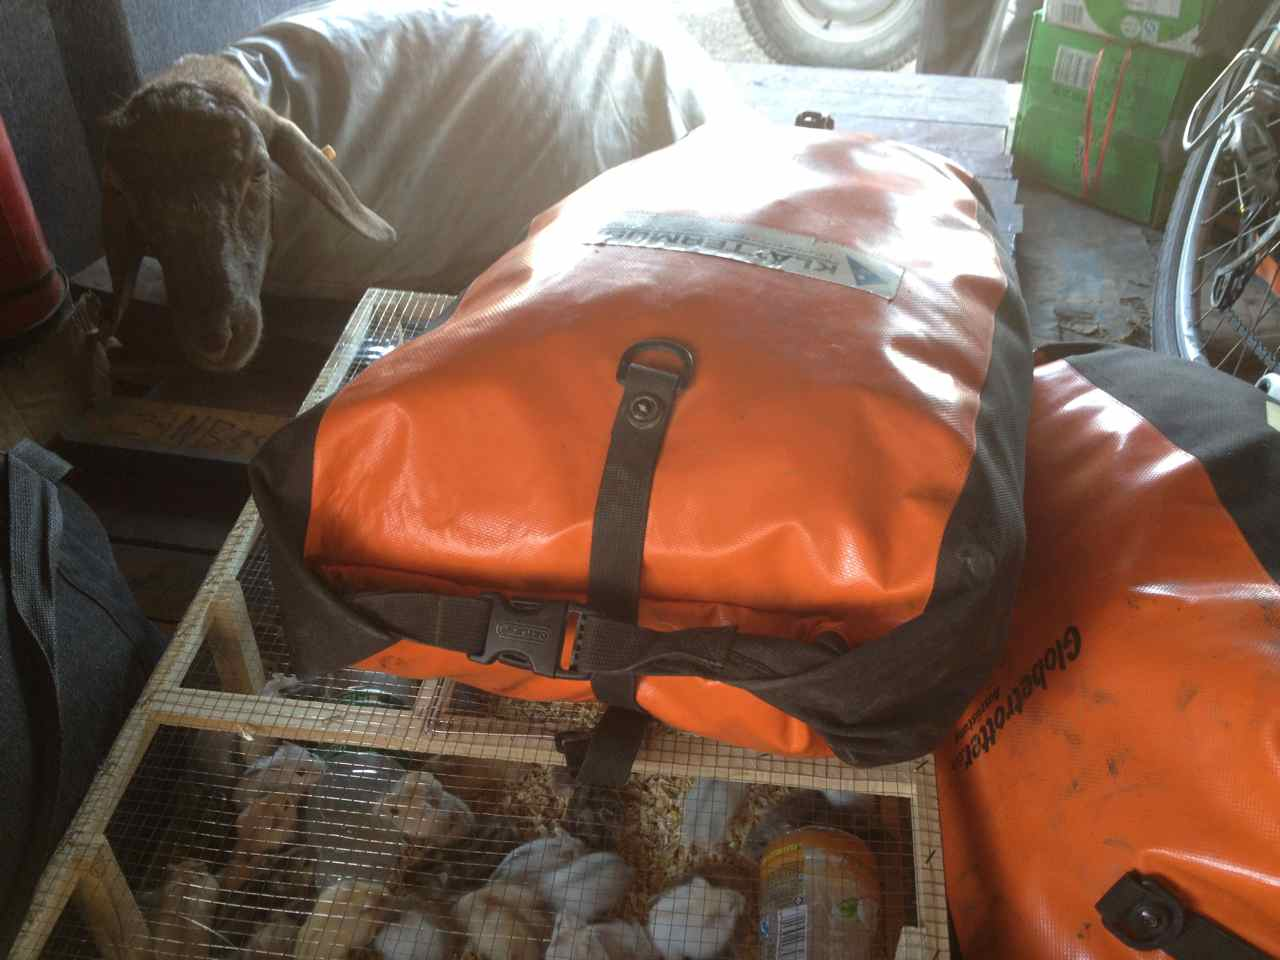 The sheep in a sack watches our panniers put on top of a box with live mice